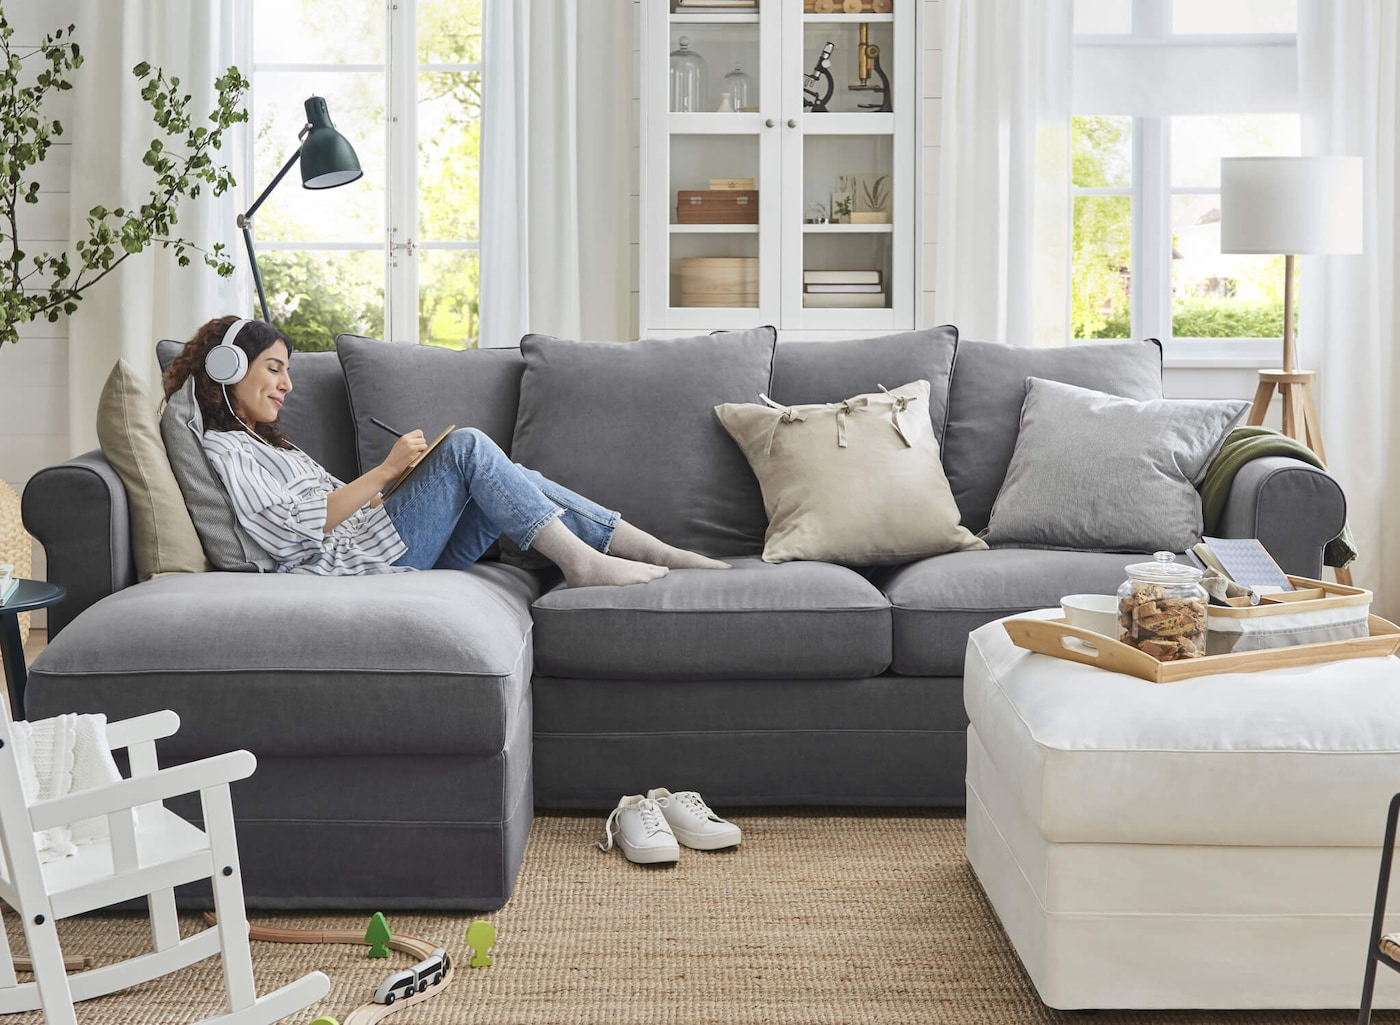 A woman with headphones lounging on a gray sofa with a chaise lounge in a living room with tall windows.